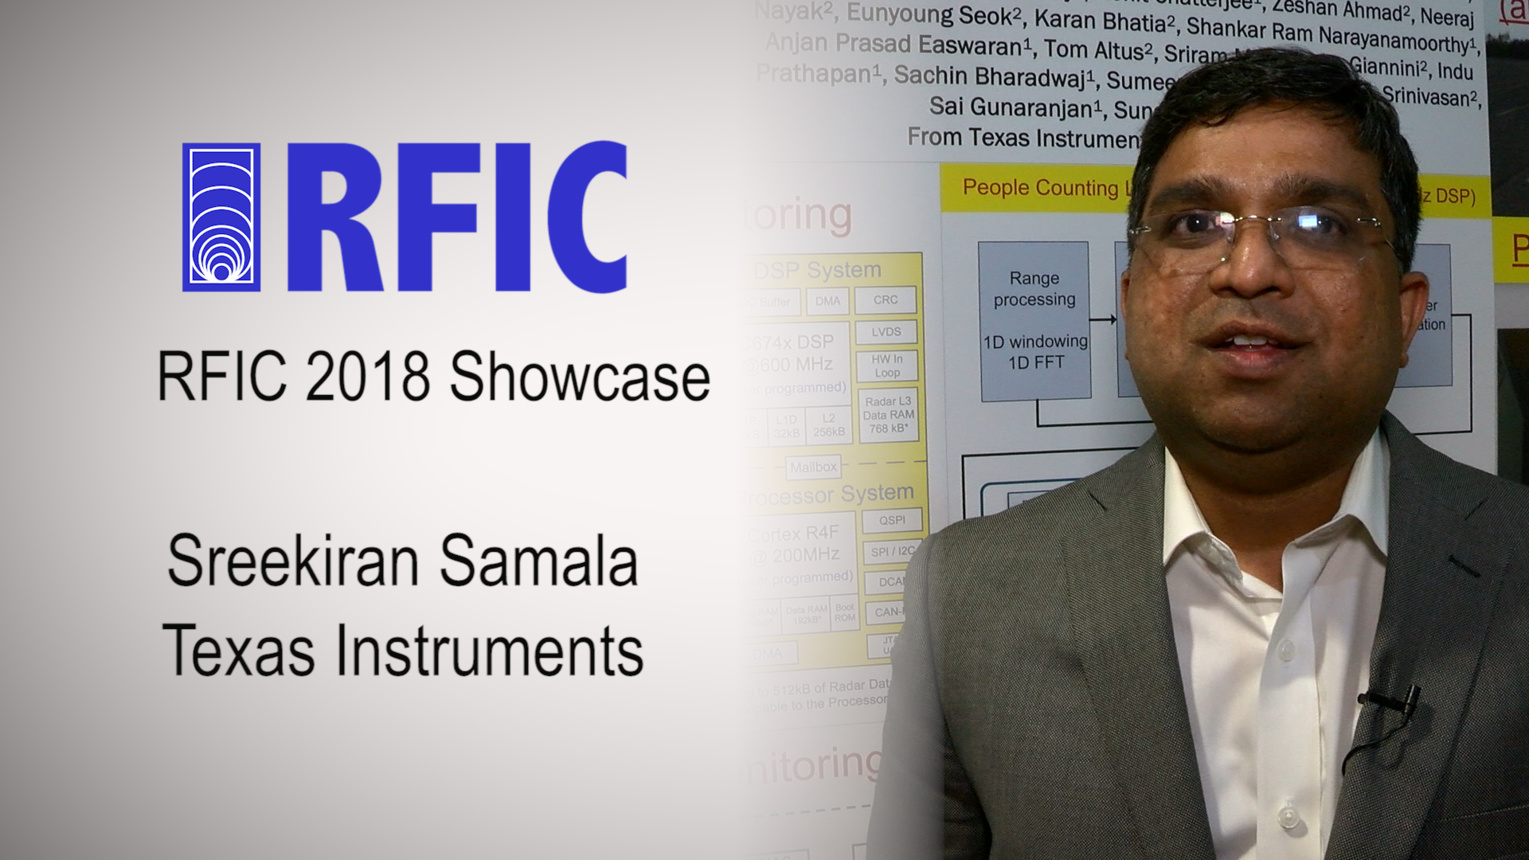 CMOS mmWave Radar SoC Architecture and Applications - Sreekiran Samala - RFIC Showcase 2018